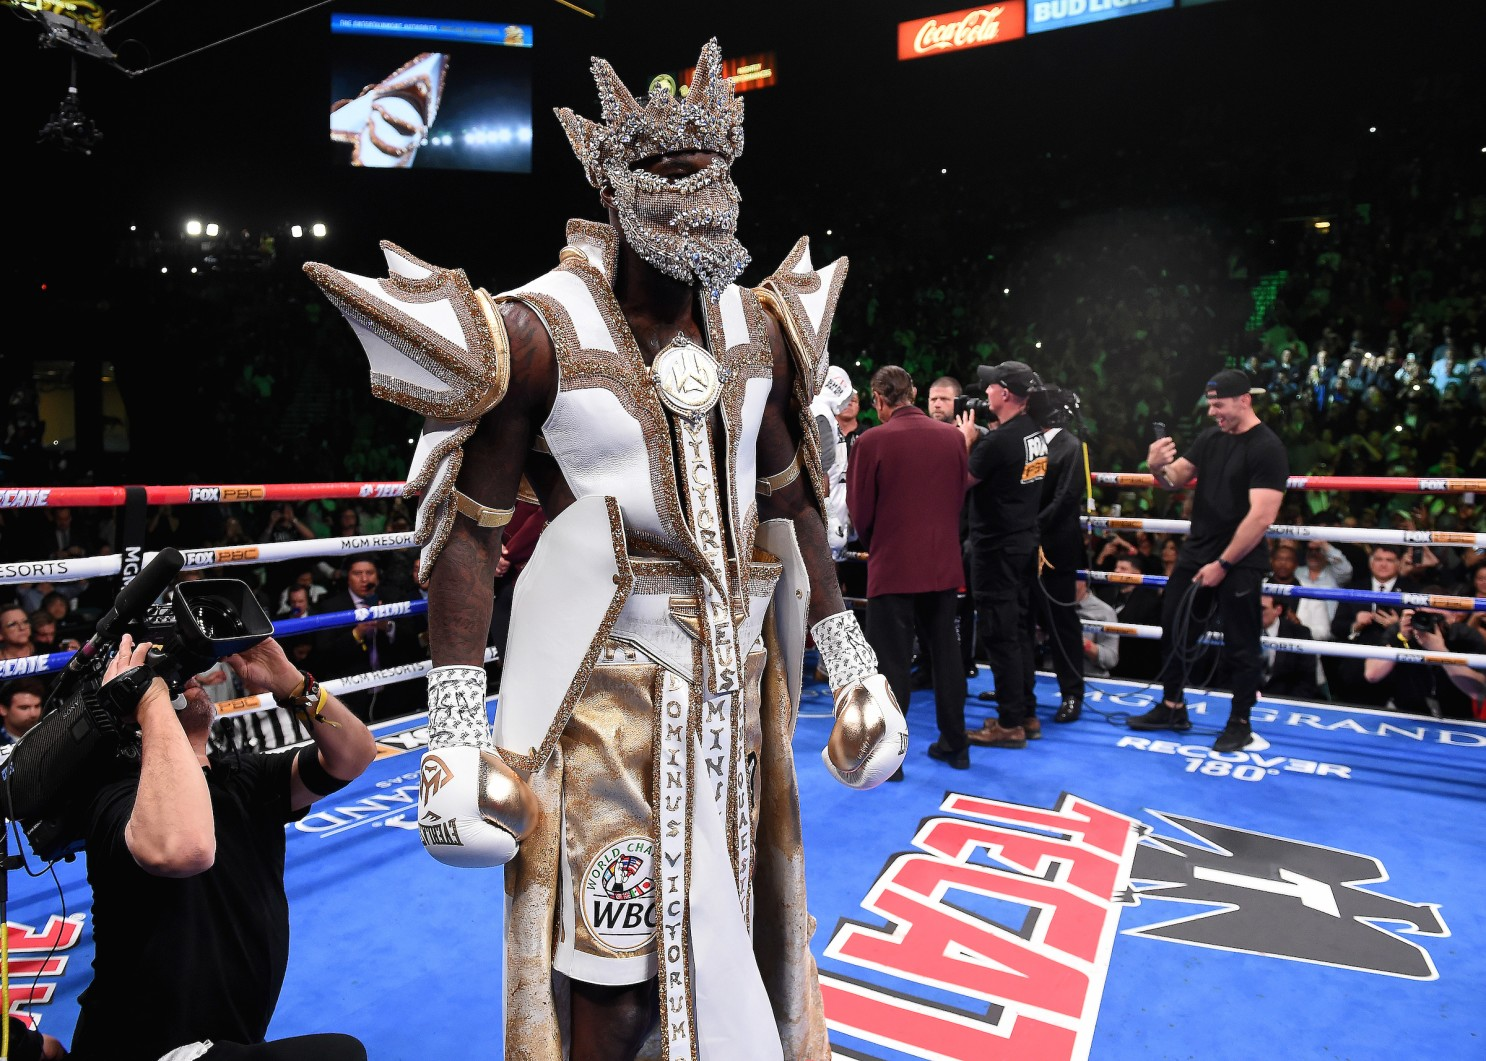 Four things Wilder will display in the Fury trilogy: Rejuvenated, reinvented, violent, and victorious